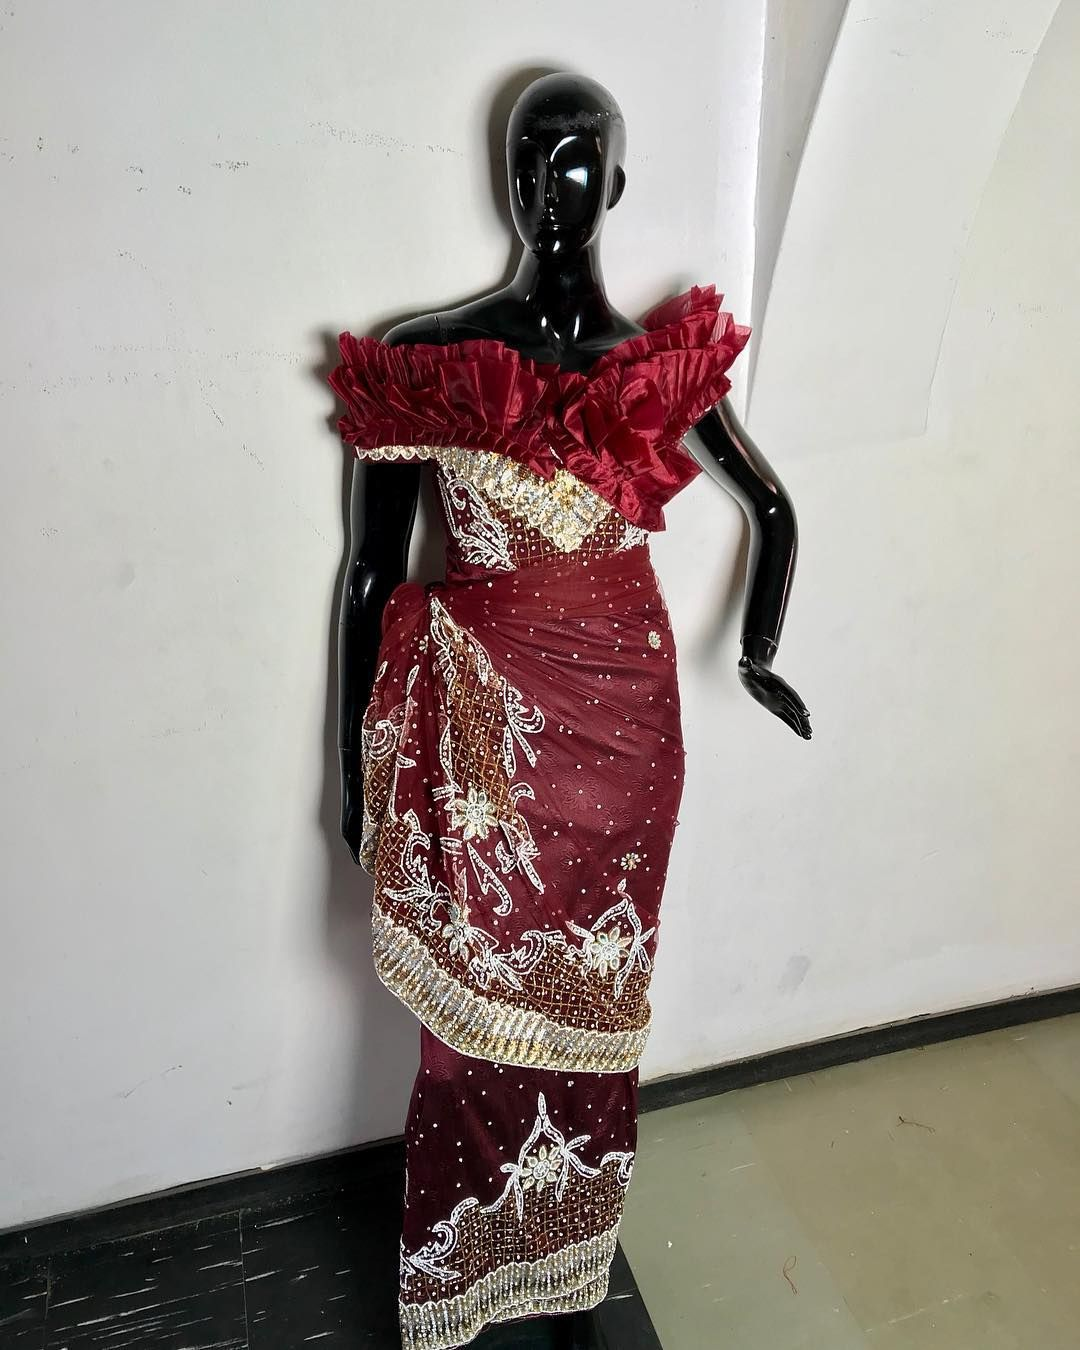 Abuja Fashion Designer On Instagram Come And Experience The Nellygalt Touch Outfit By Yours Truly We Do Custom Fashion African Dress Fashion Design